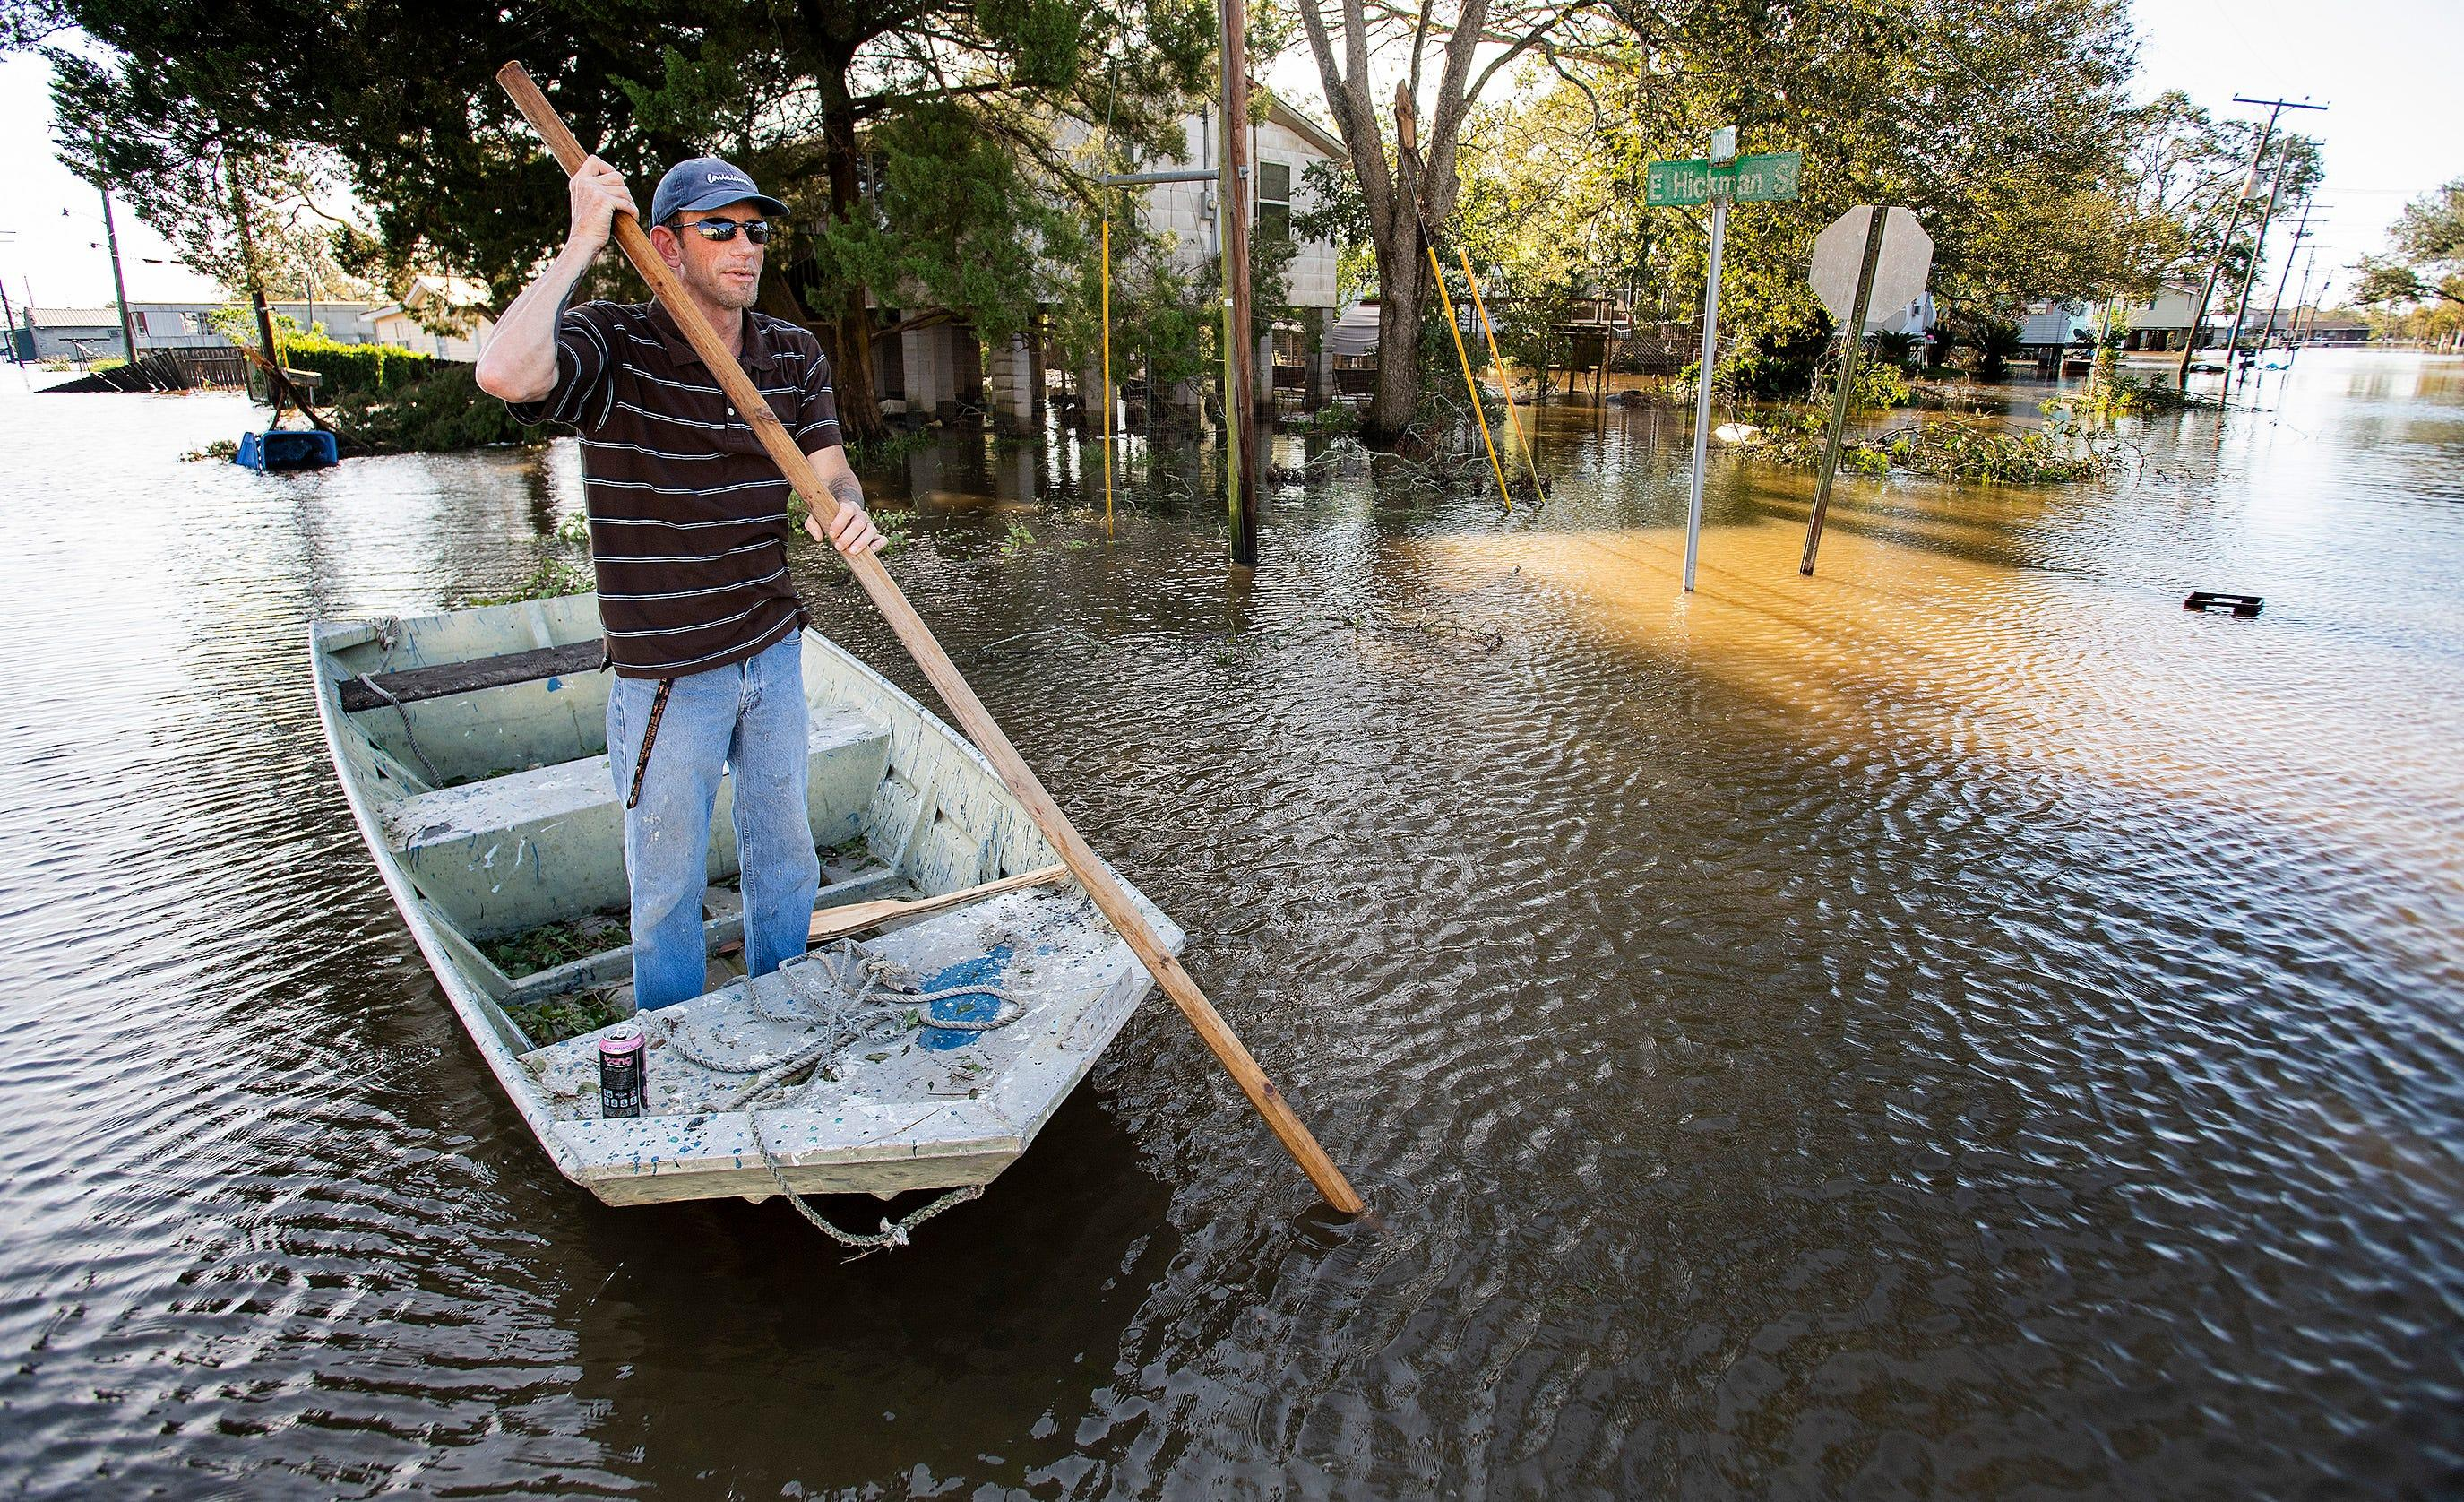 Delta live updates: Hundreds of thousands without power across South; Louisiana governor urges caution as clean-up begins